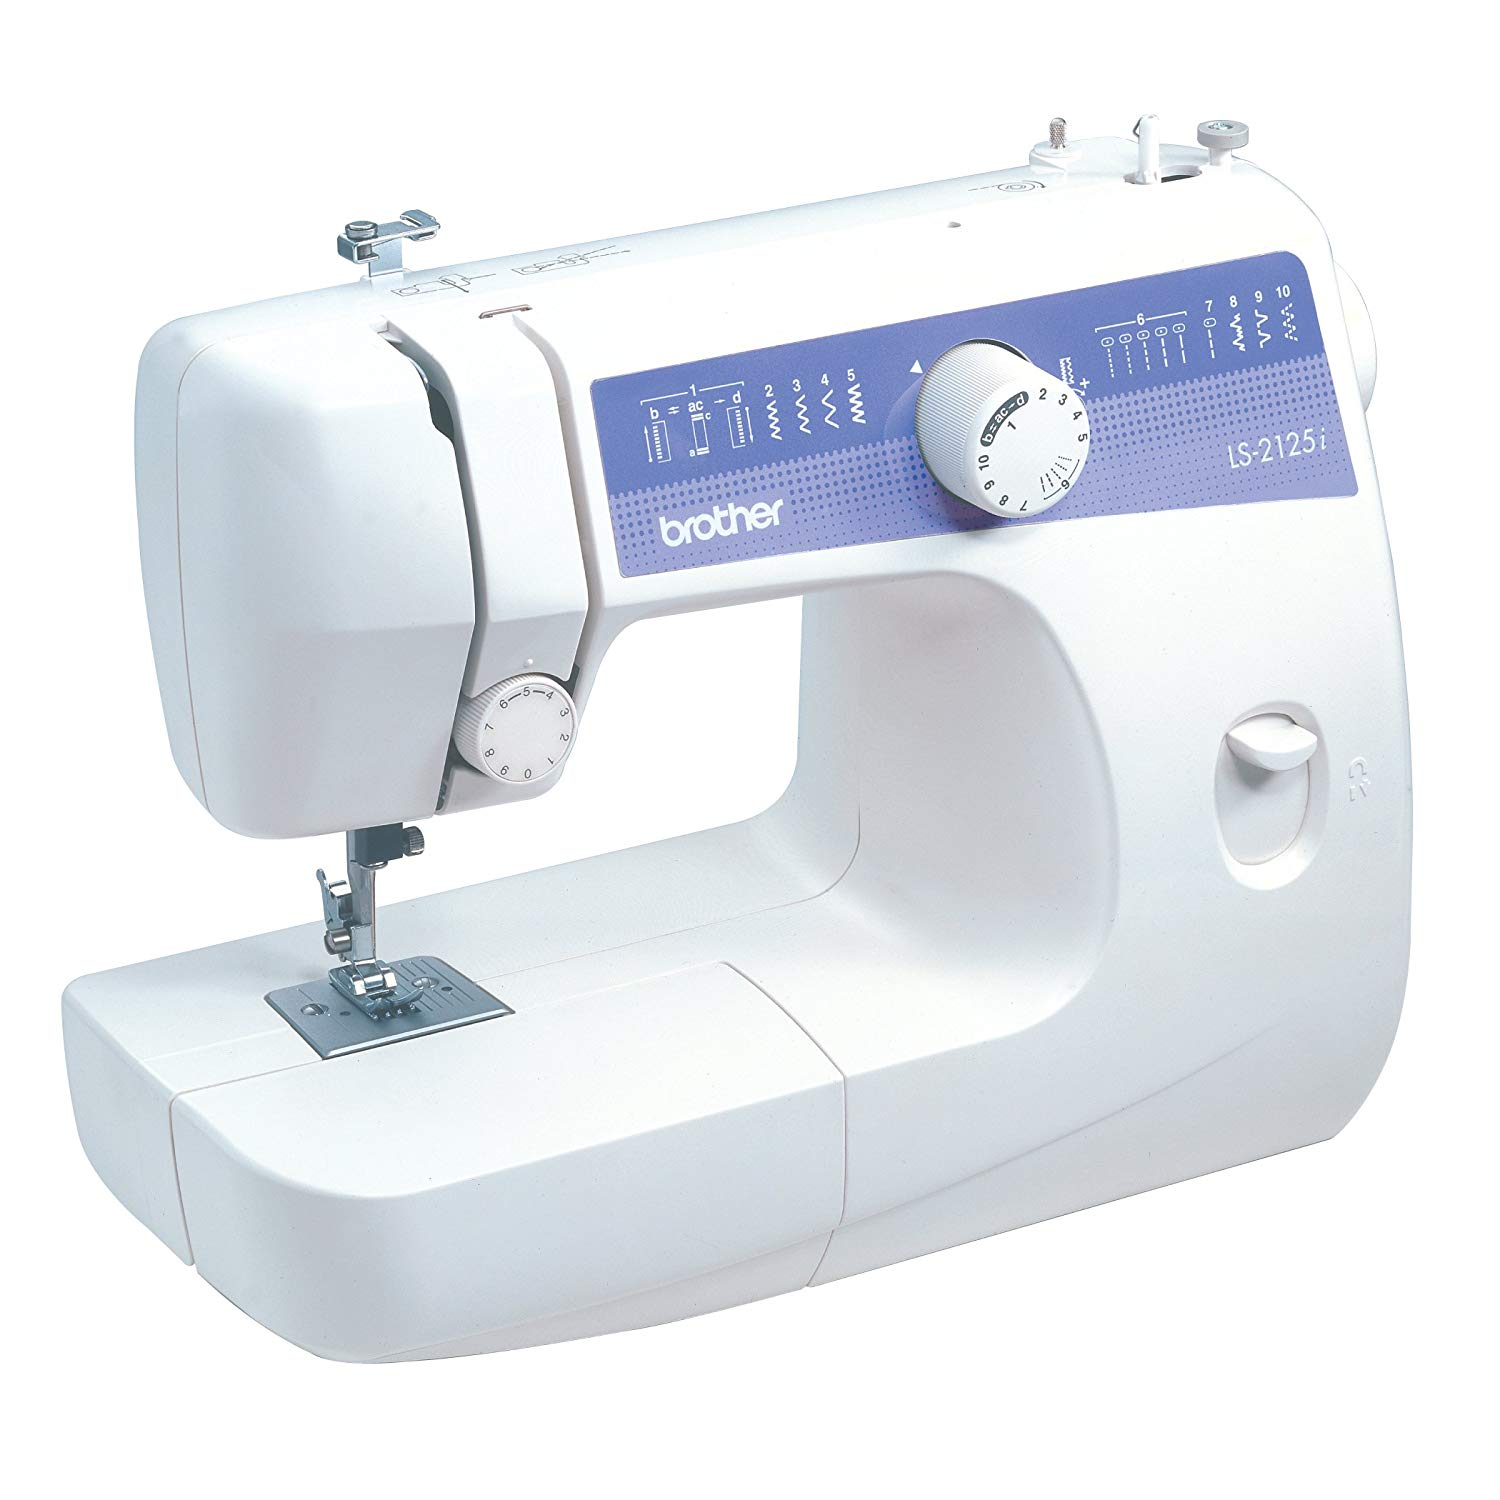 Brother LS2521i sewing machine